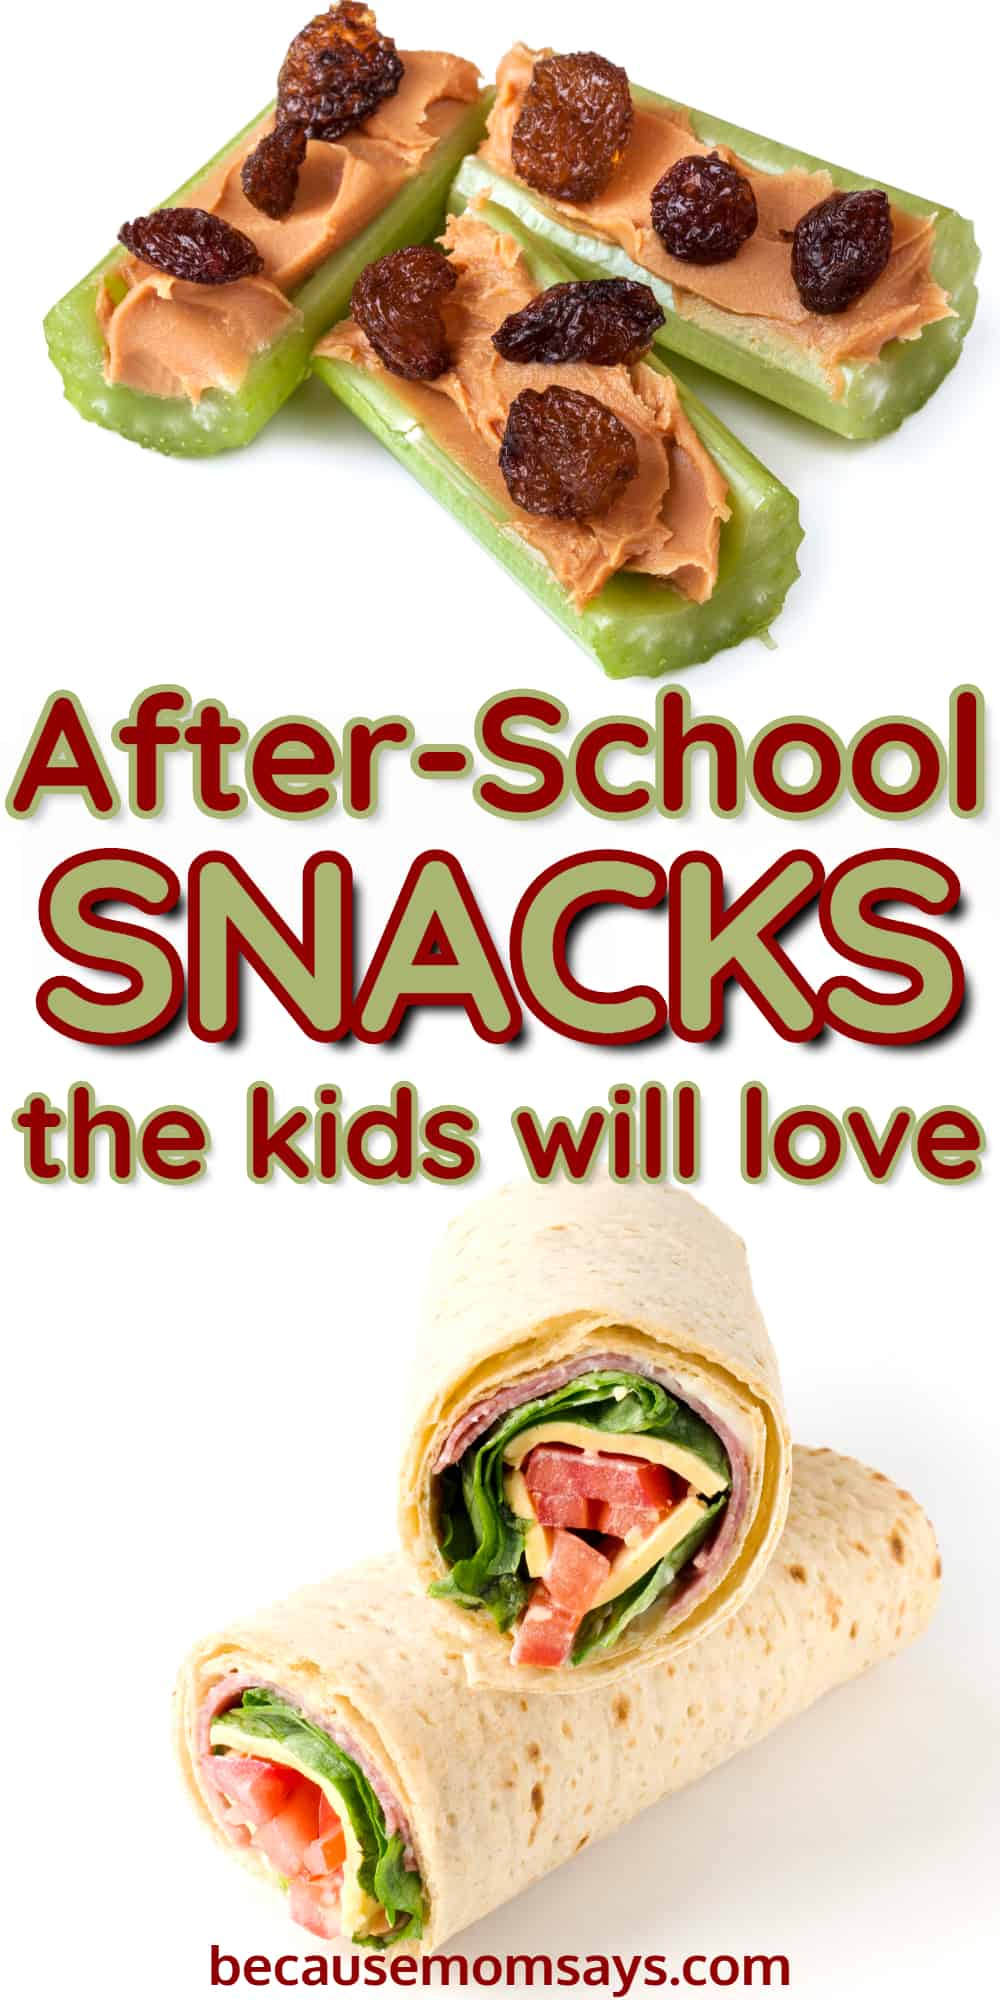 easy after school snacks for kids on a white background